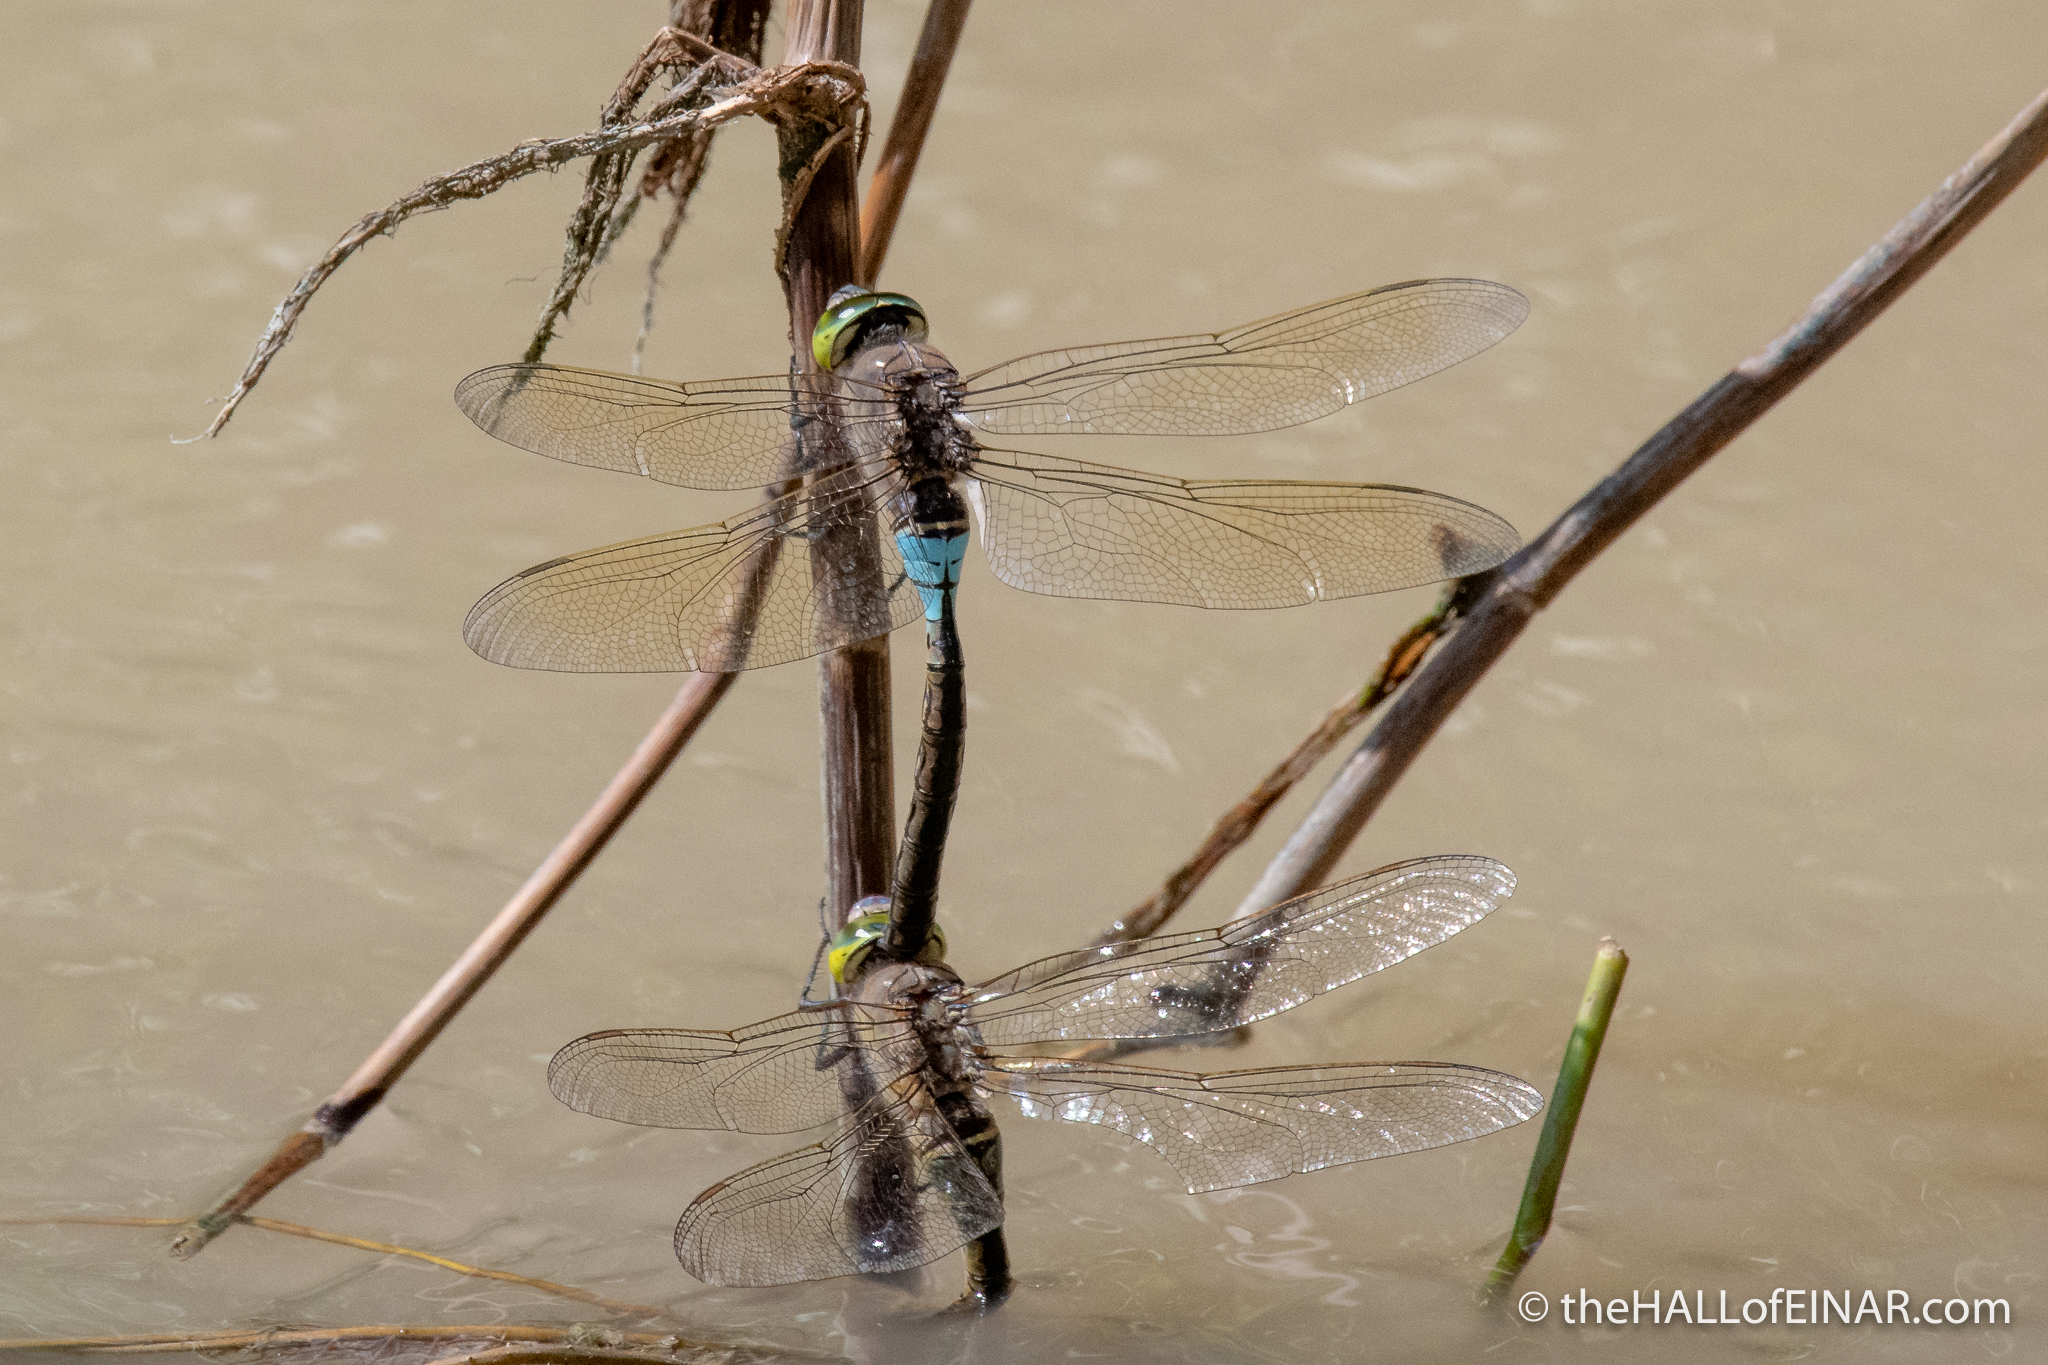 Lesser Emporer Dragonfly - Matera - The Hall of Einar - photograph (c) David Bailey (not the)